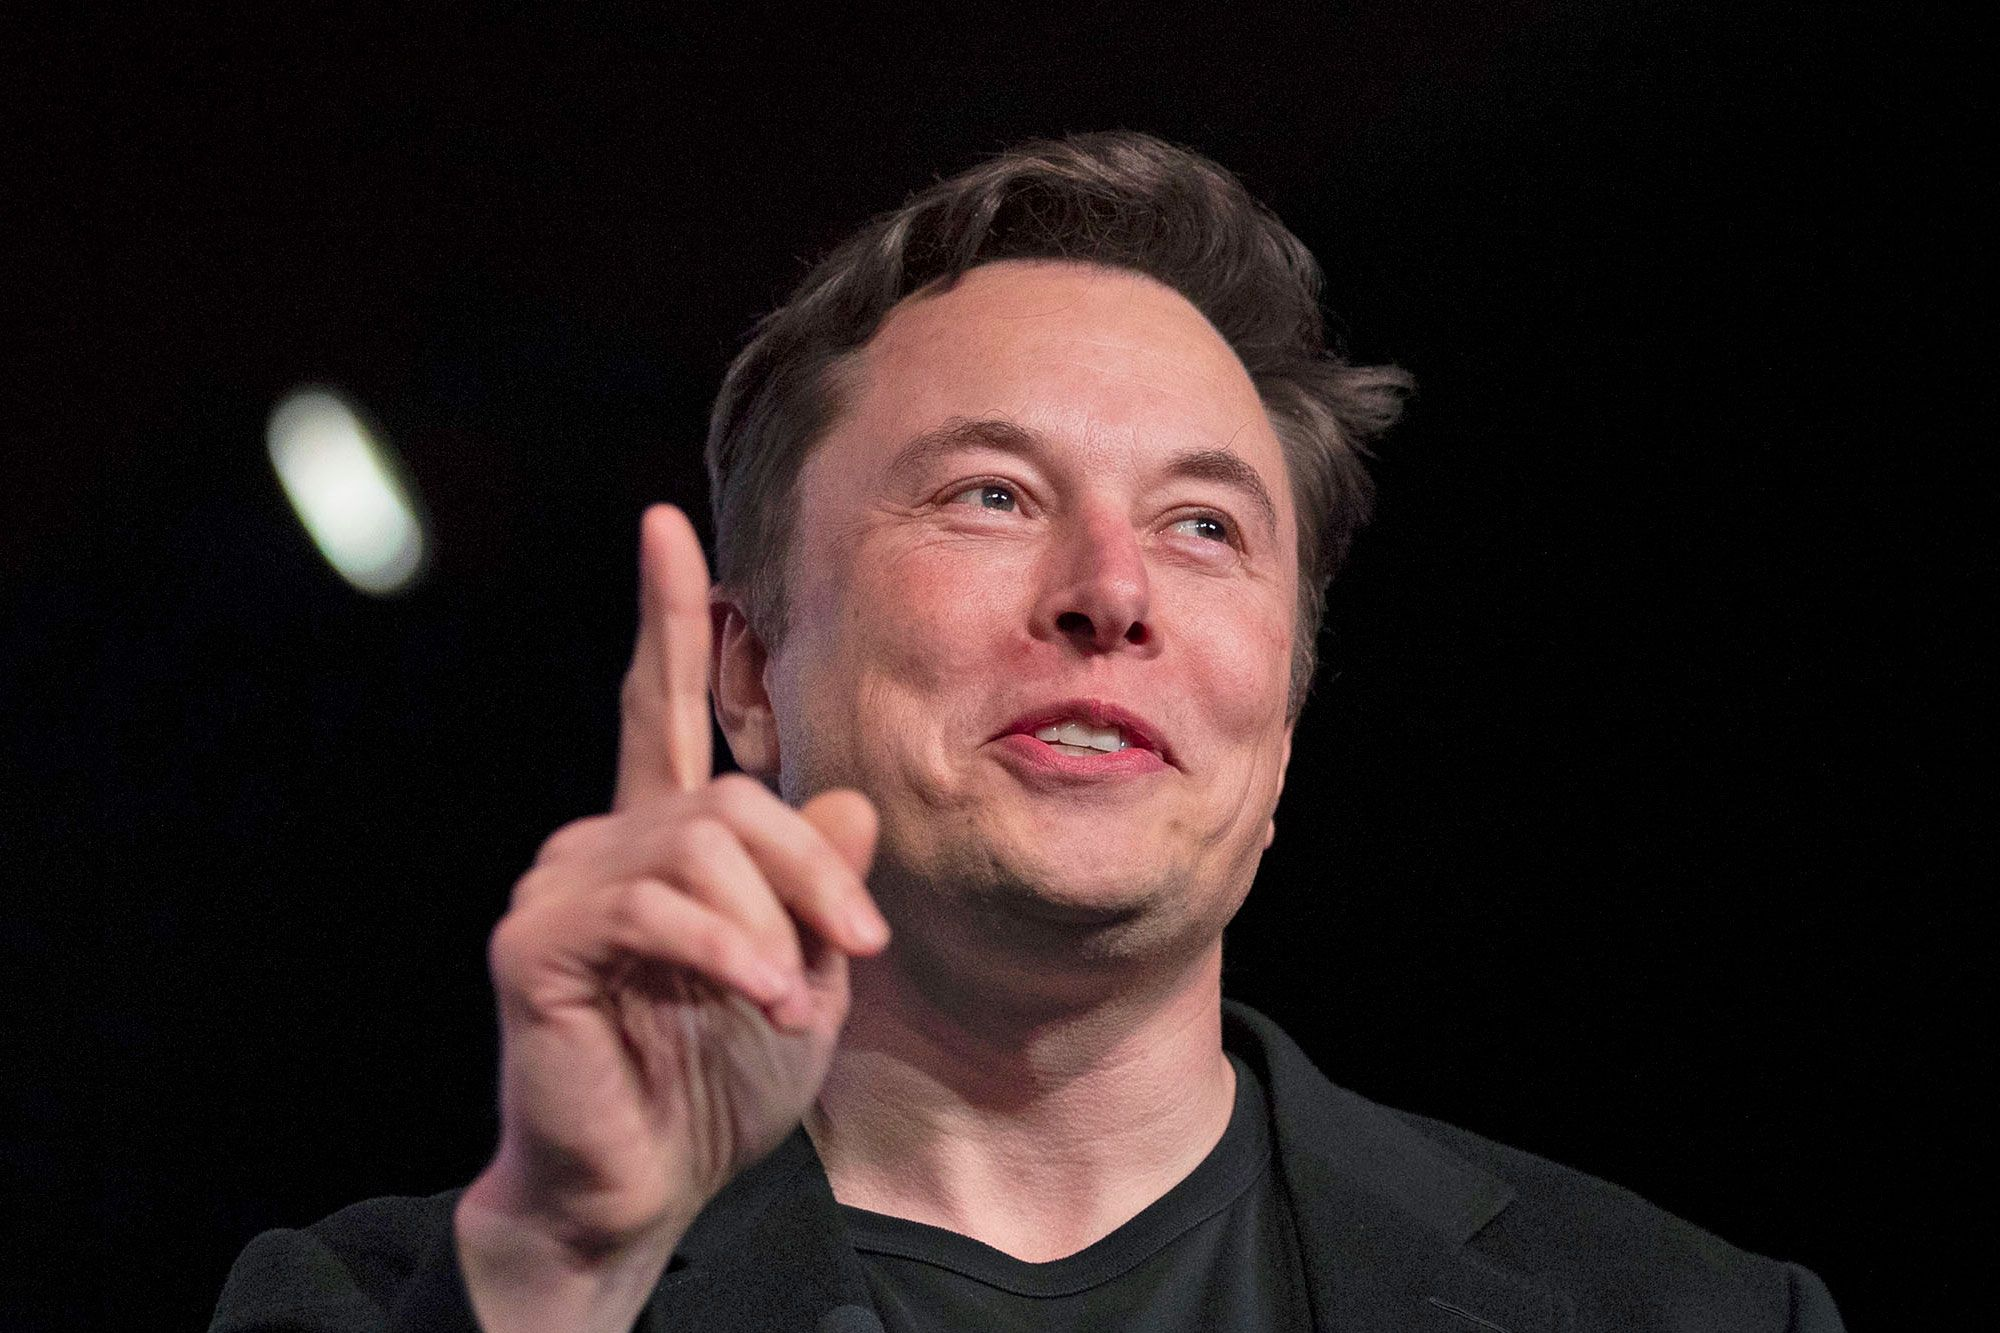 Elon Musk Says That Teslas Will be Able to Safely Stream Netflix and YouTube 'Soon'